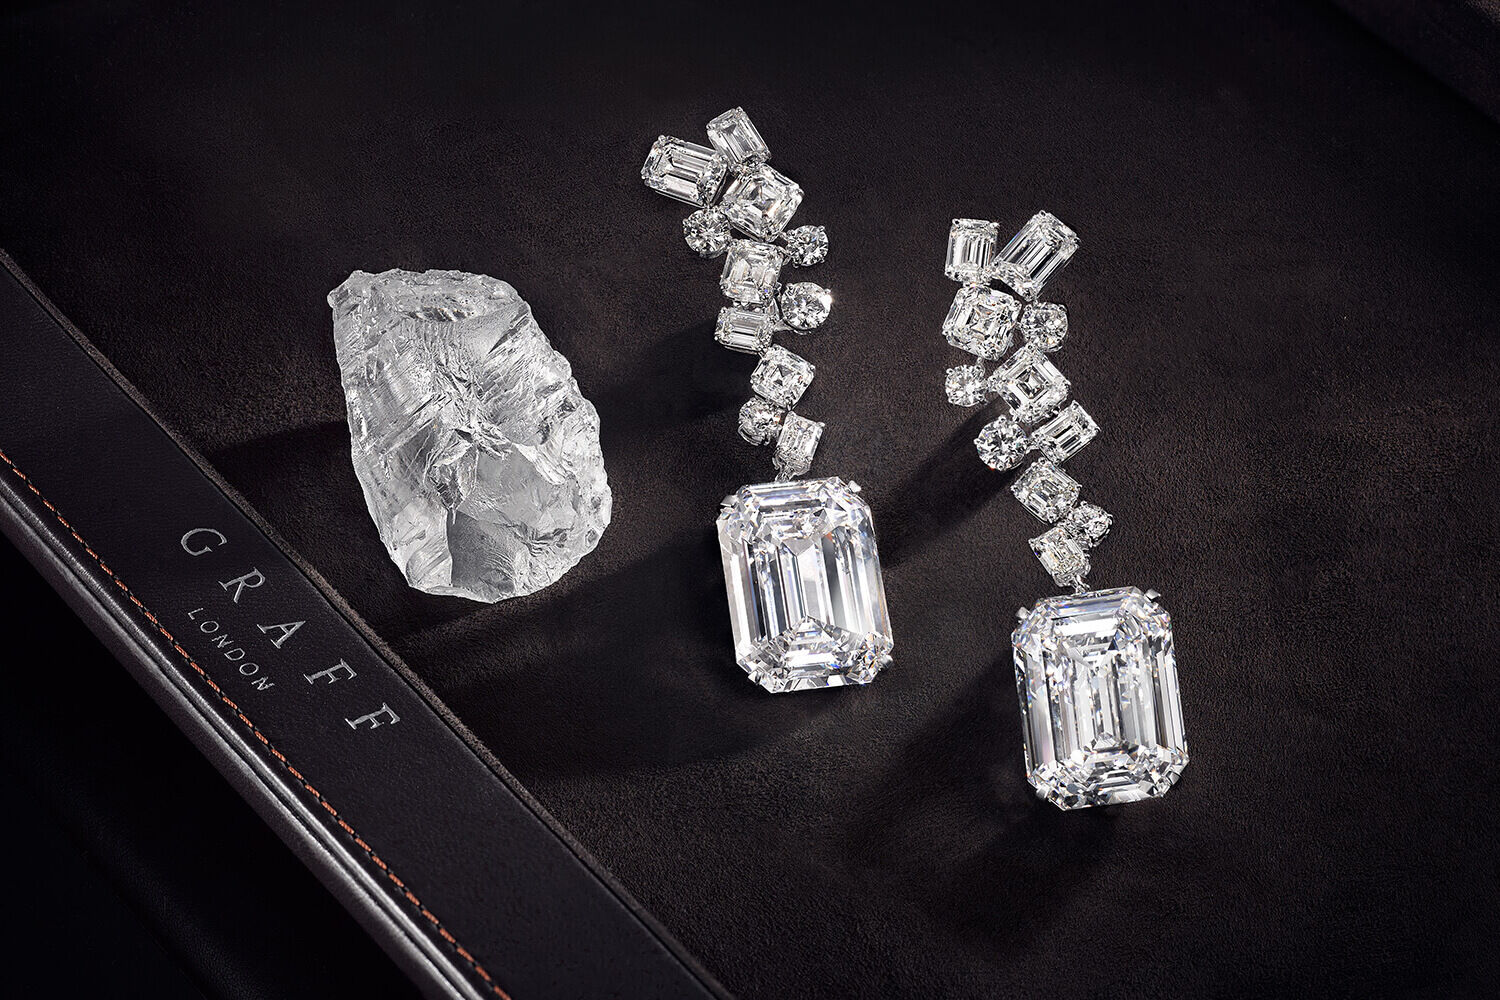 The Graff Eternal Twins - two identical D Flawless emerald cut diamonds weighing 50.23 carats each